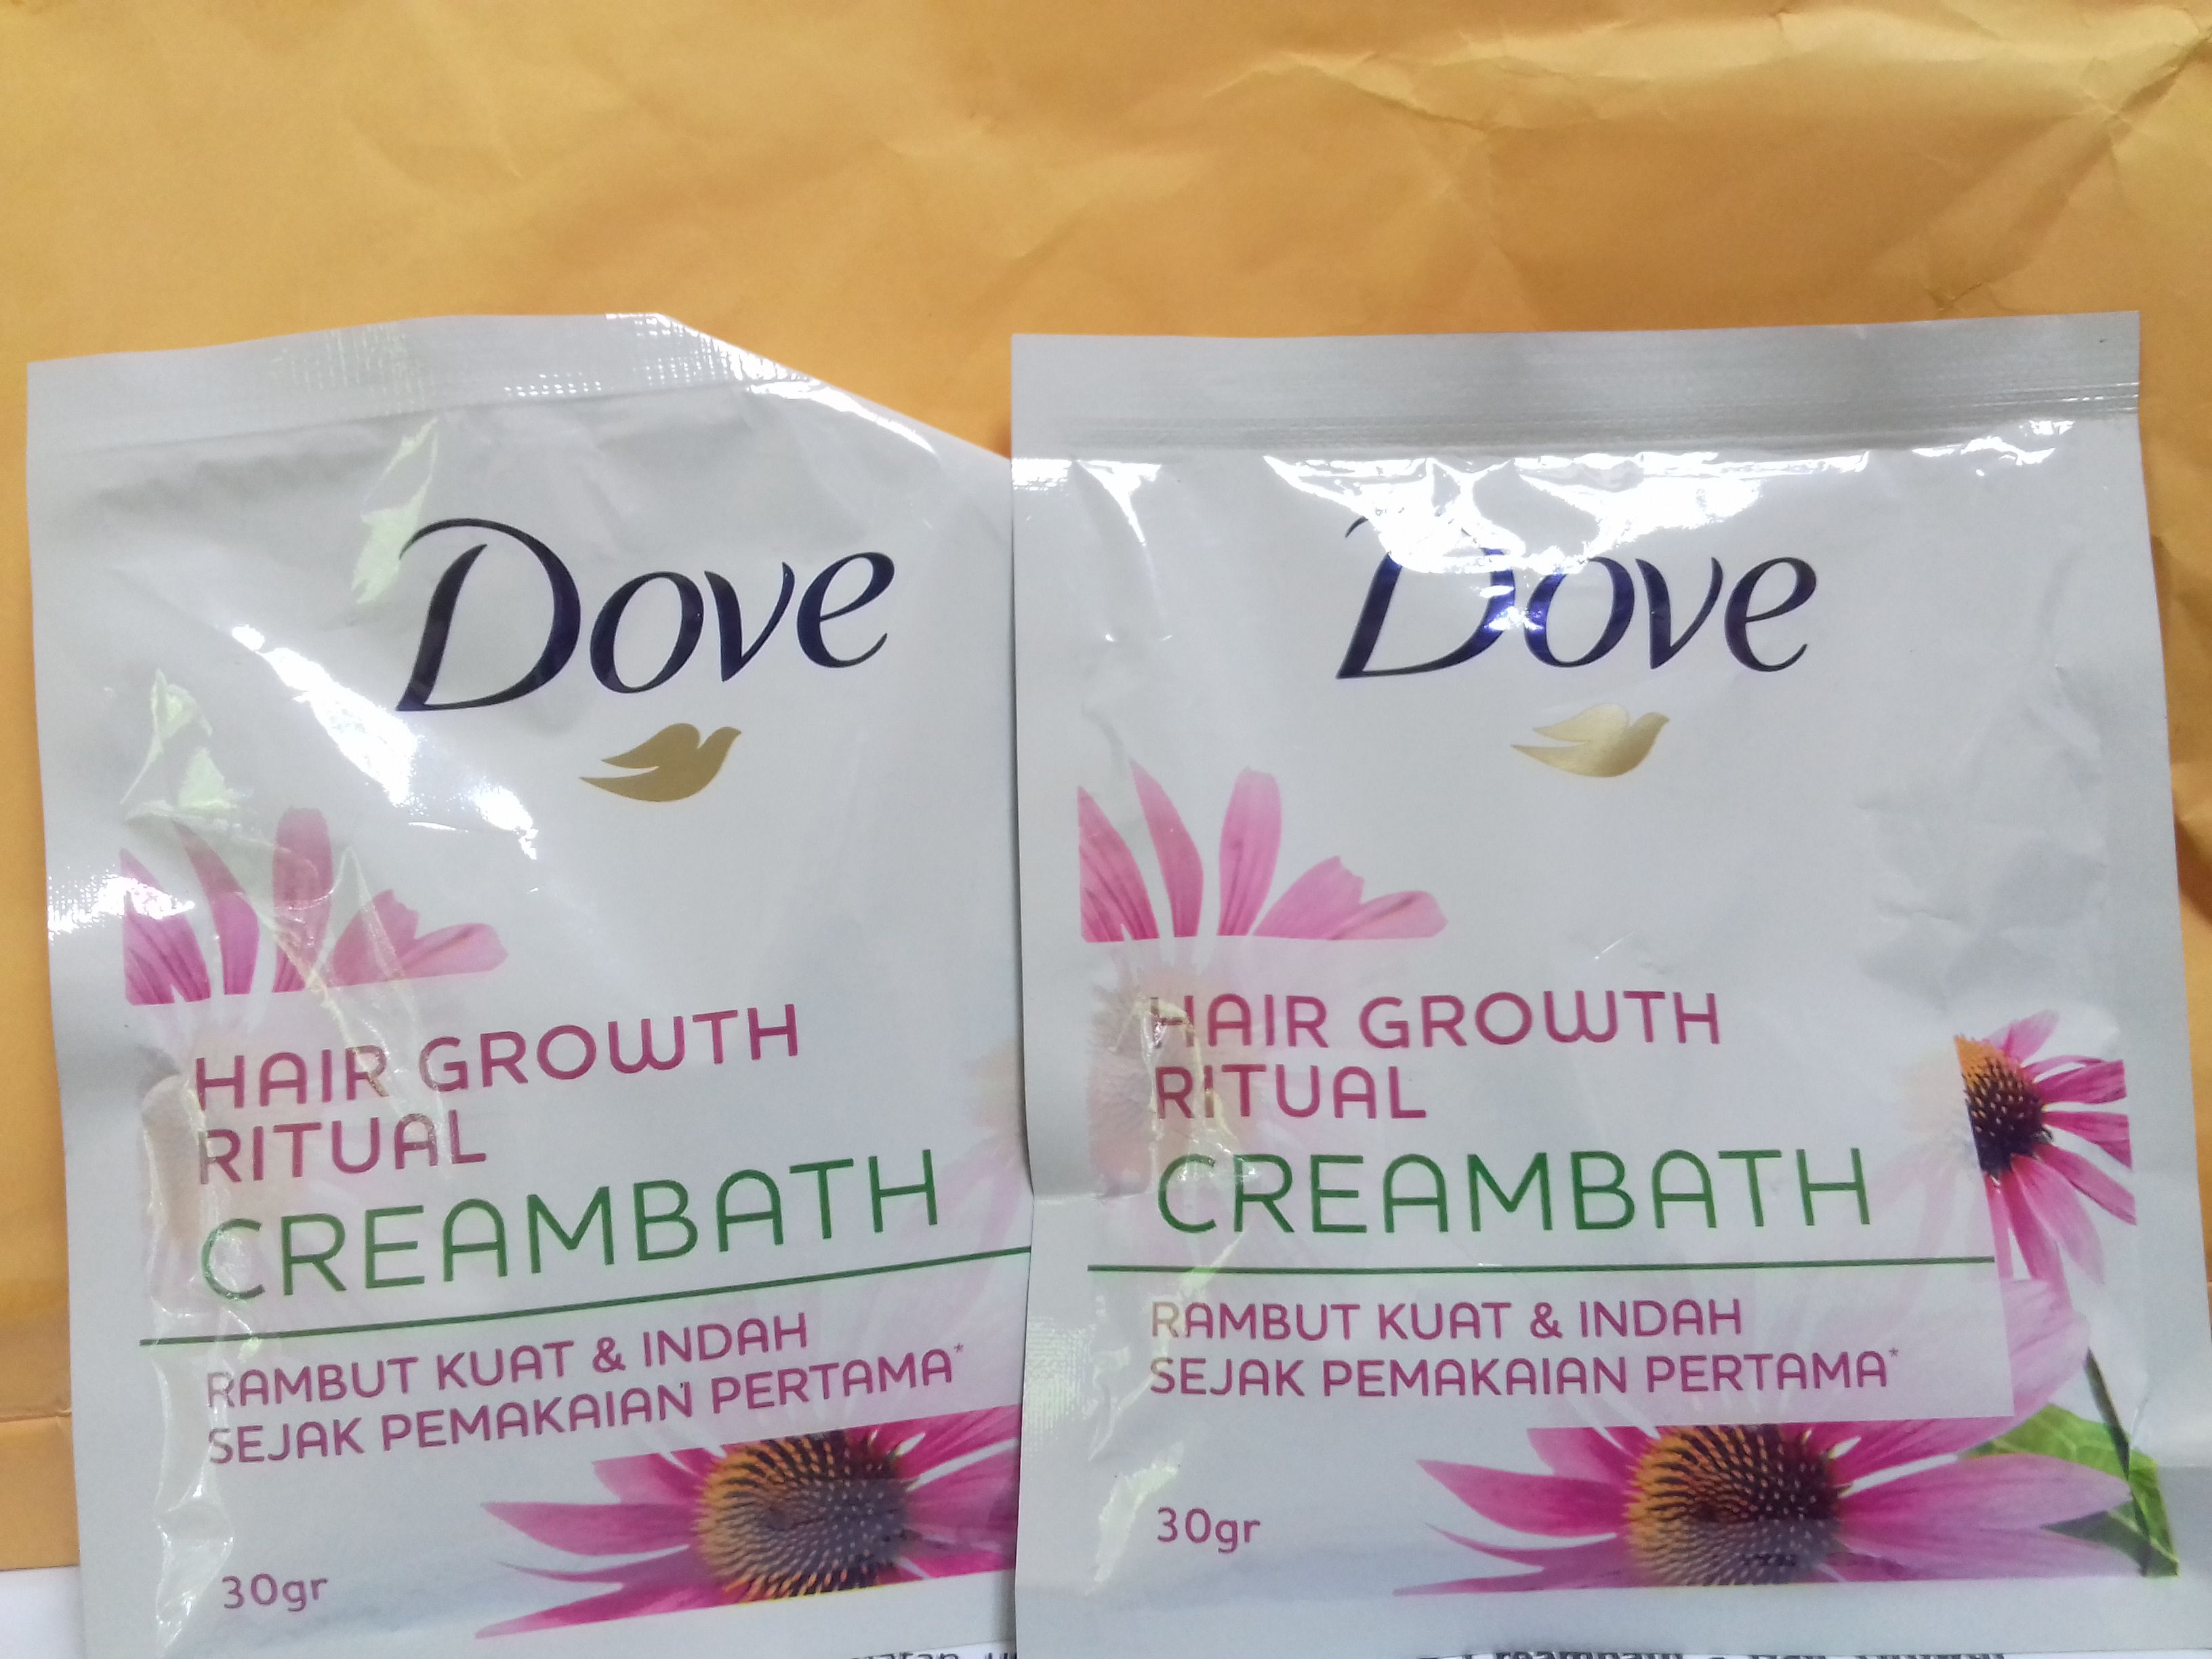 Dove Creambath - Hair Growth Ritual